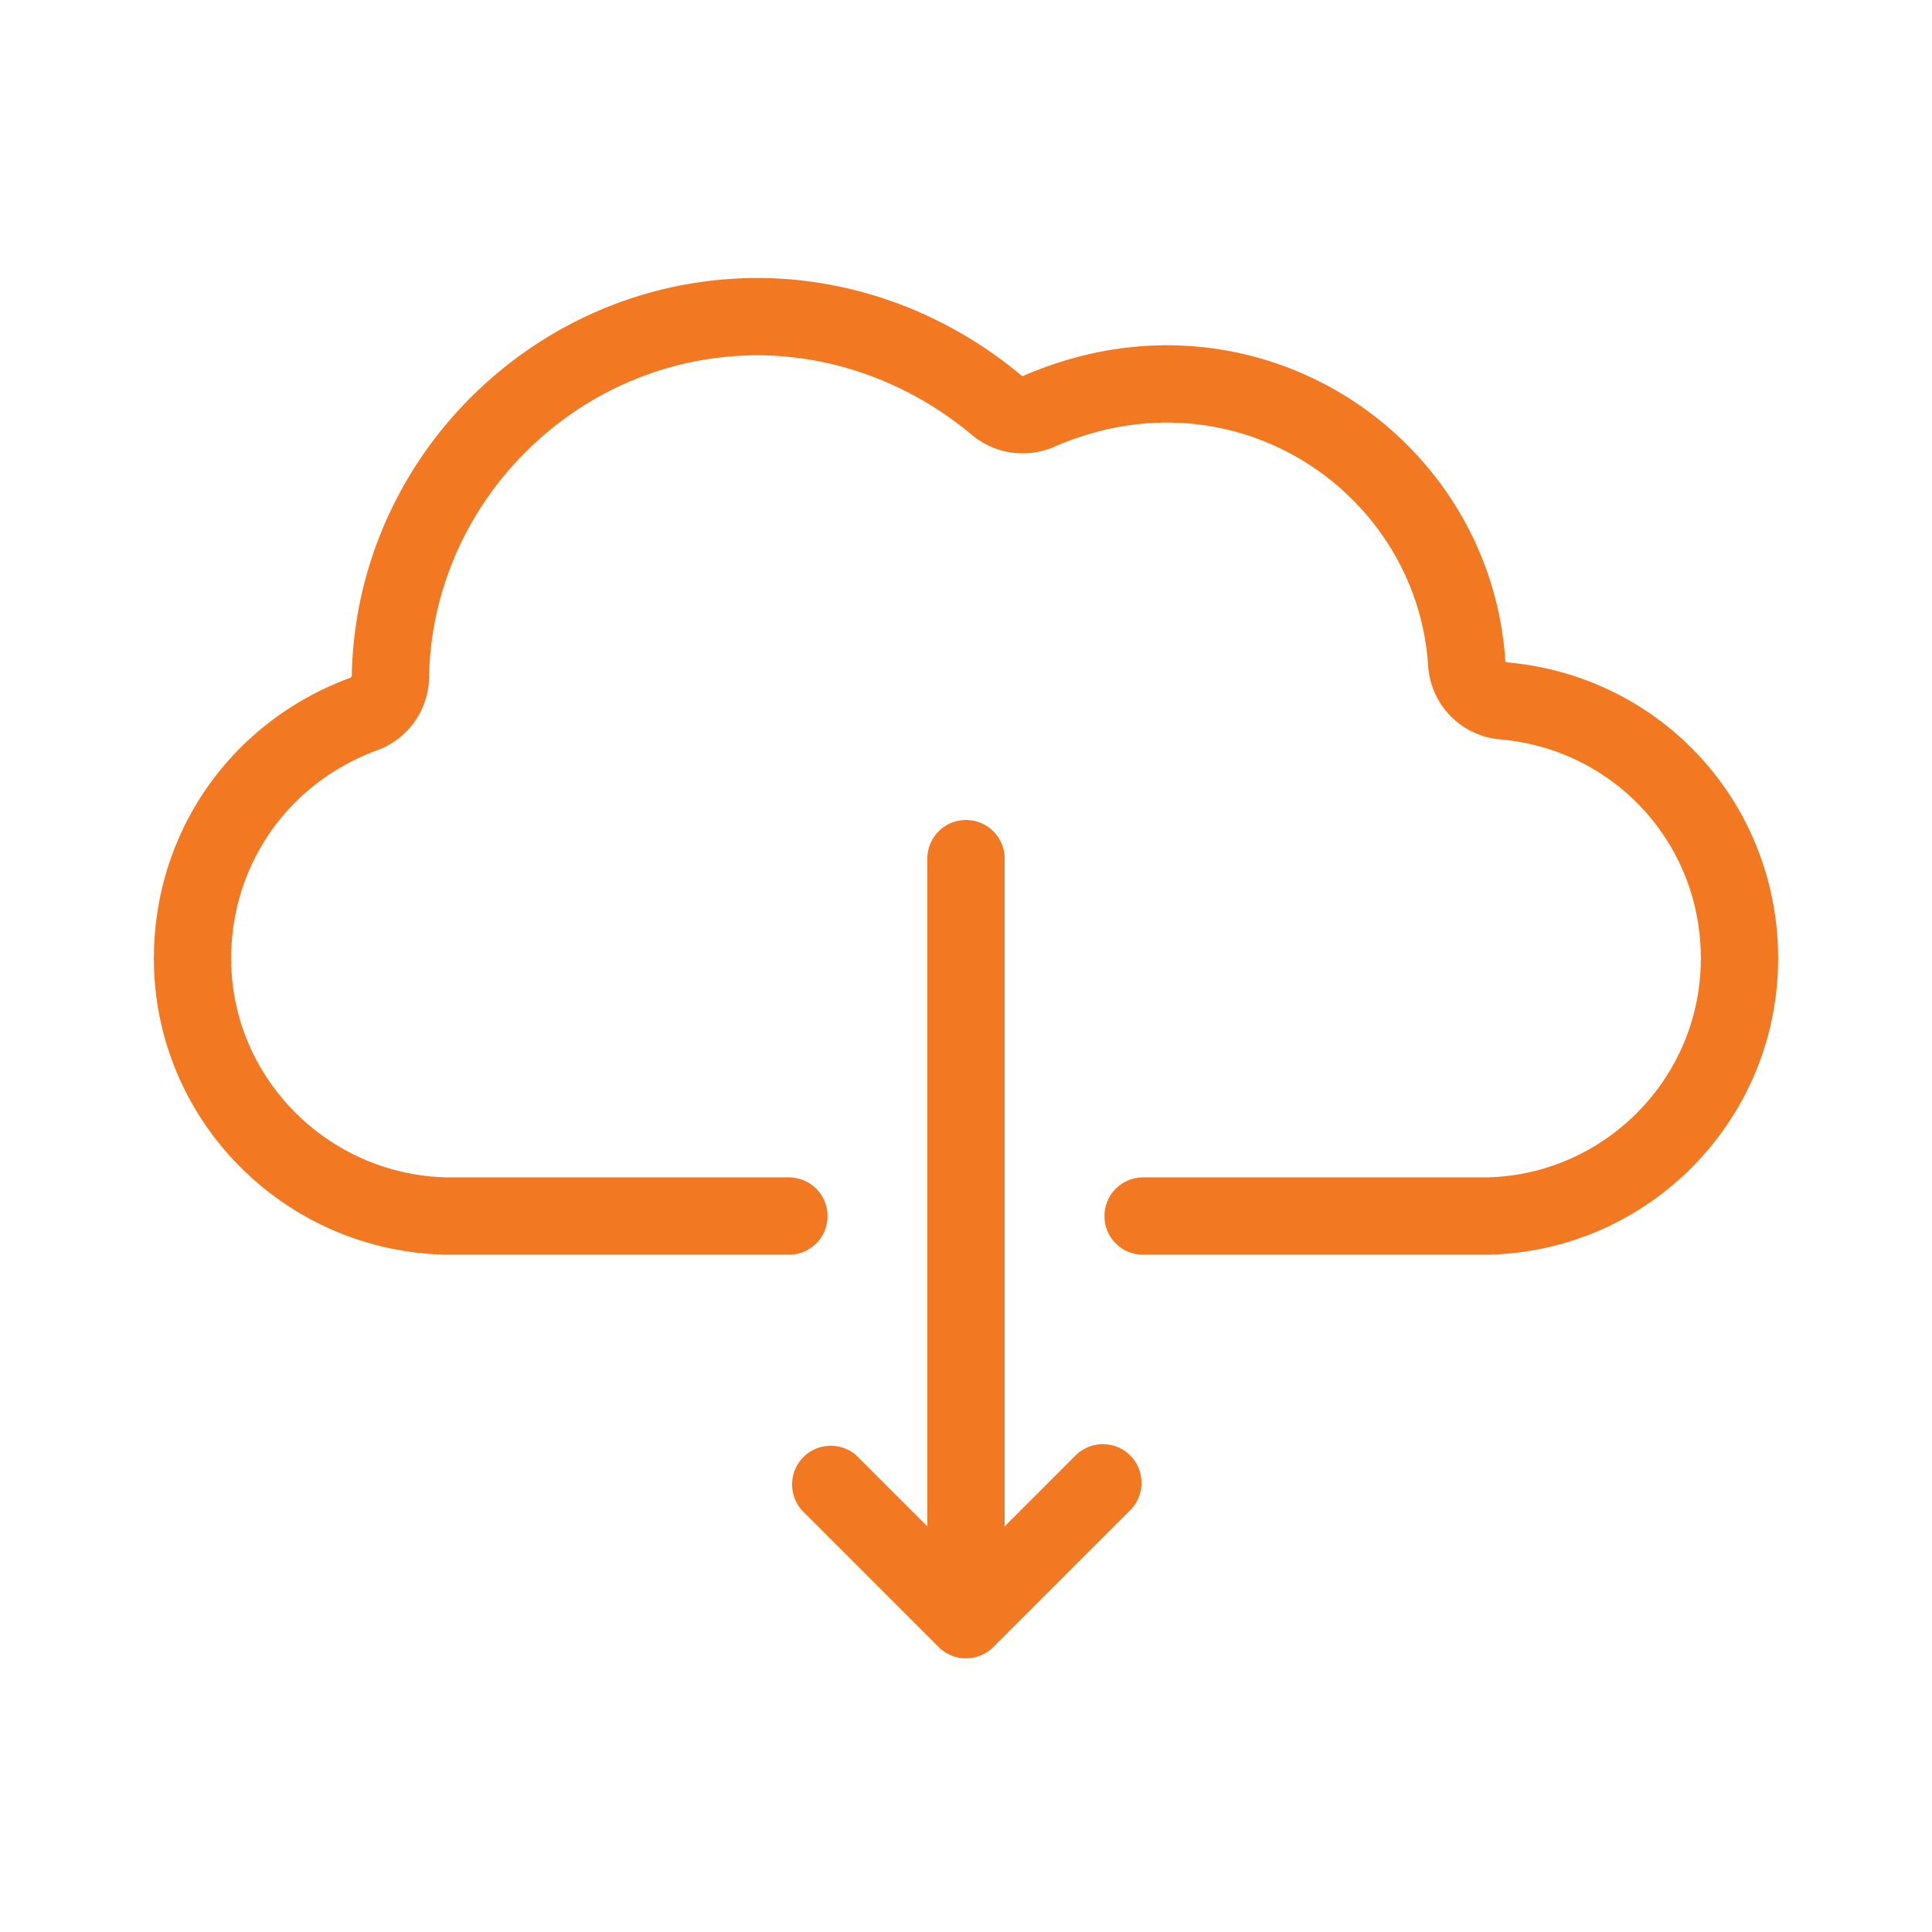 Cloud-page-icons-03